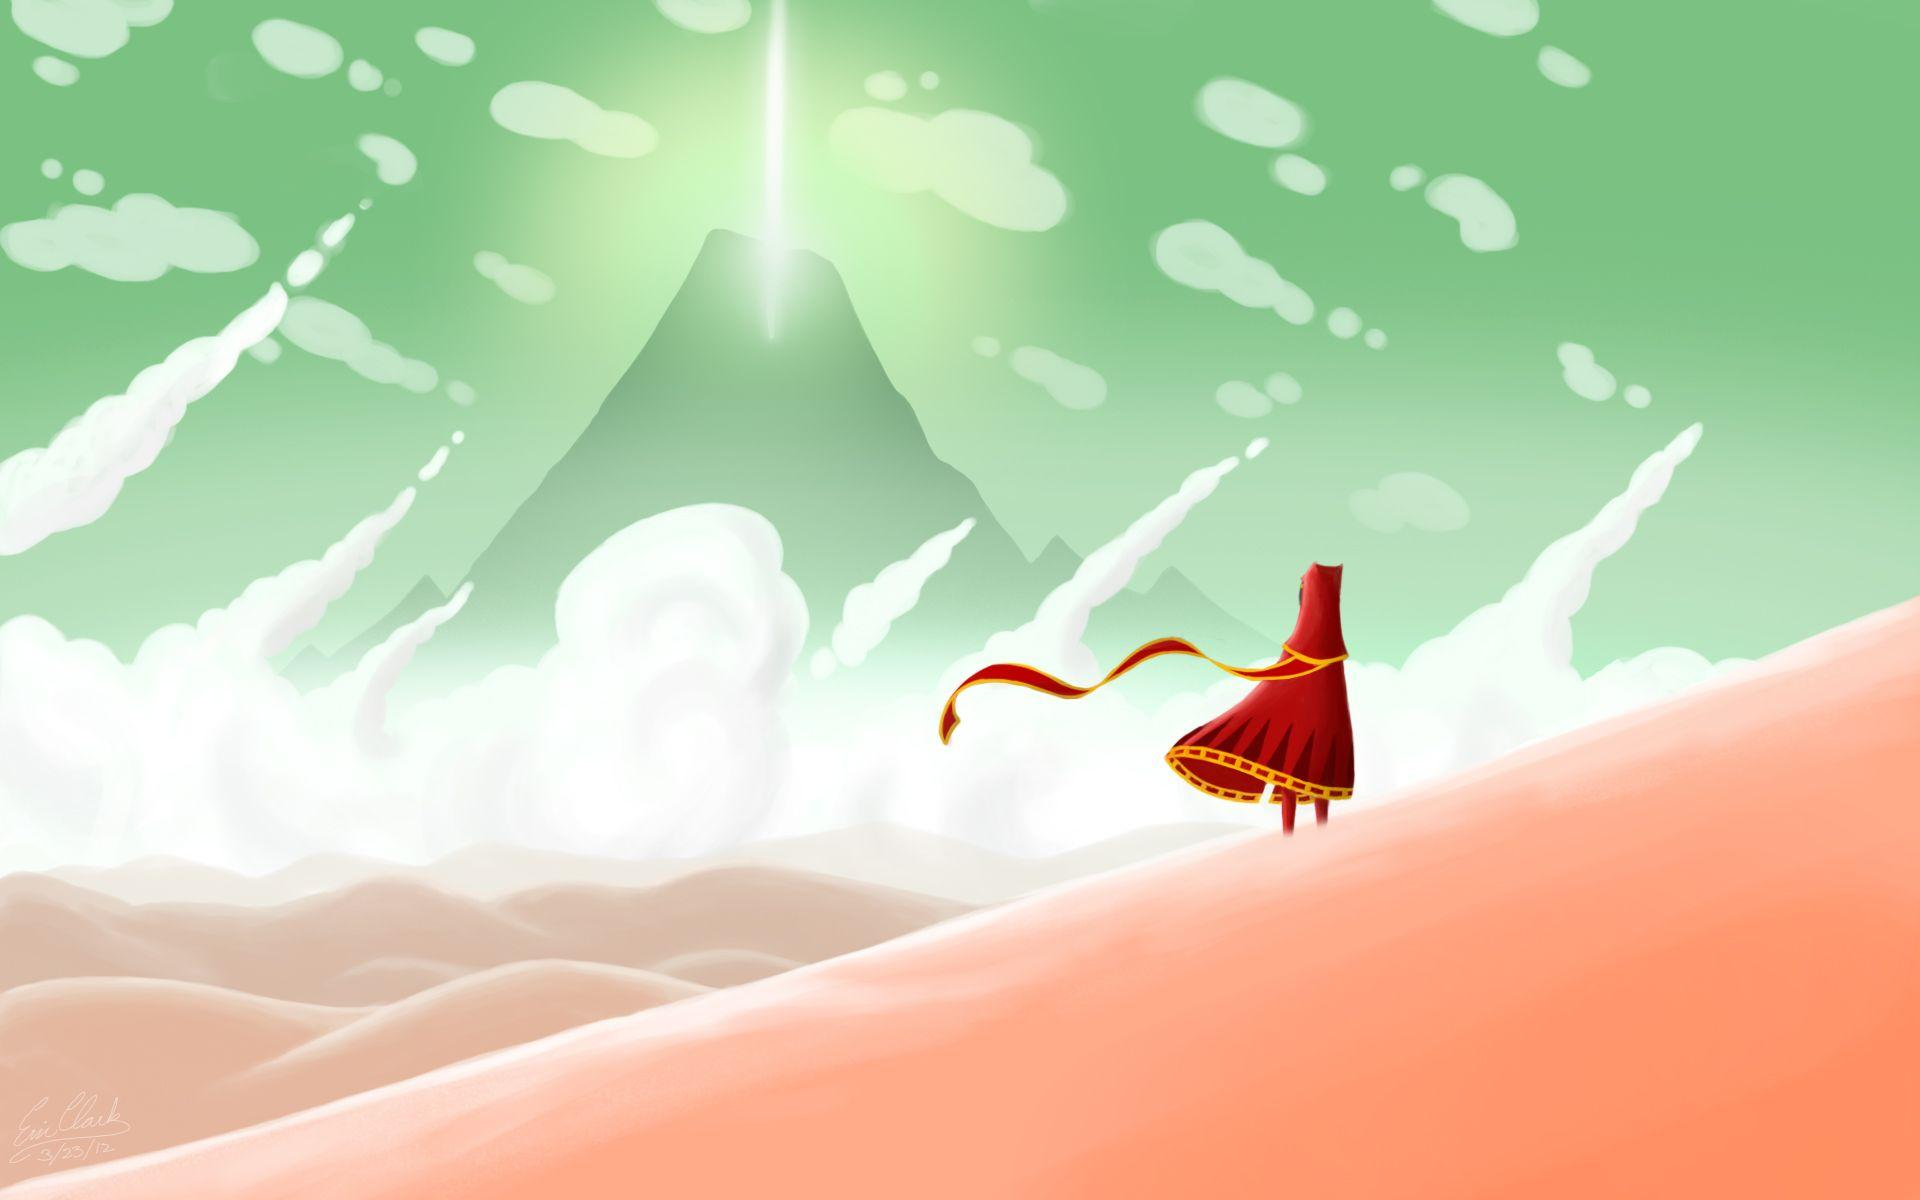 Journey Wallpapers, Desktop 4K HD Backgrounds, Wallpapers